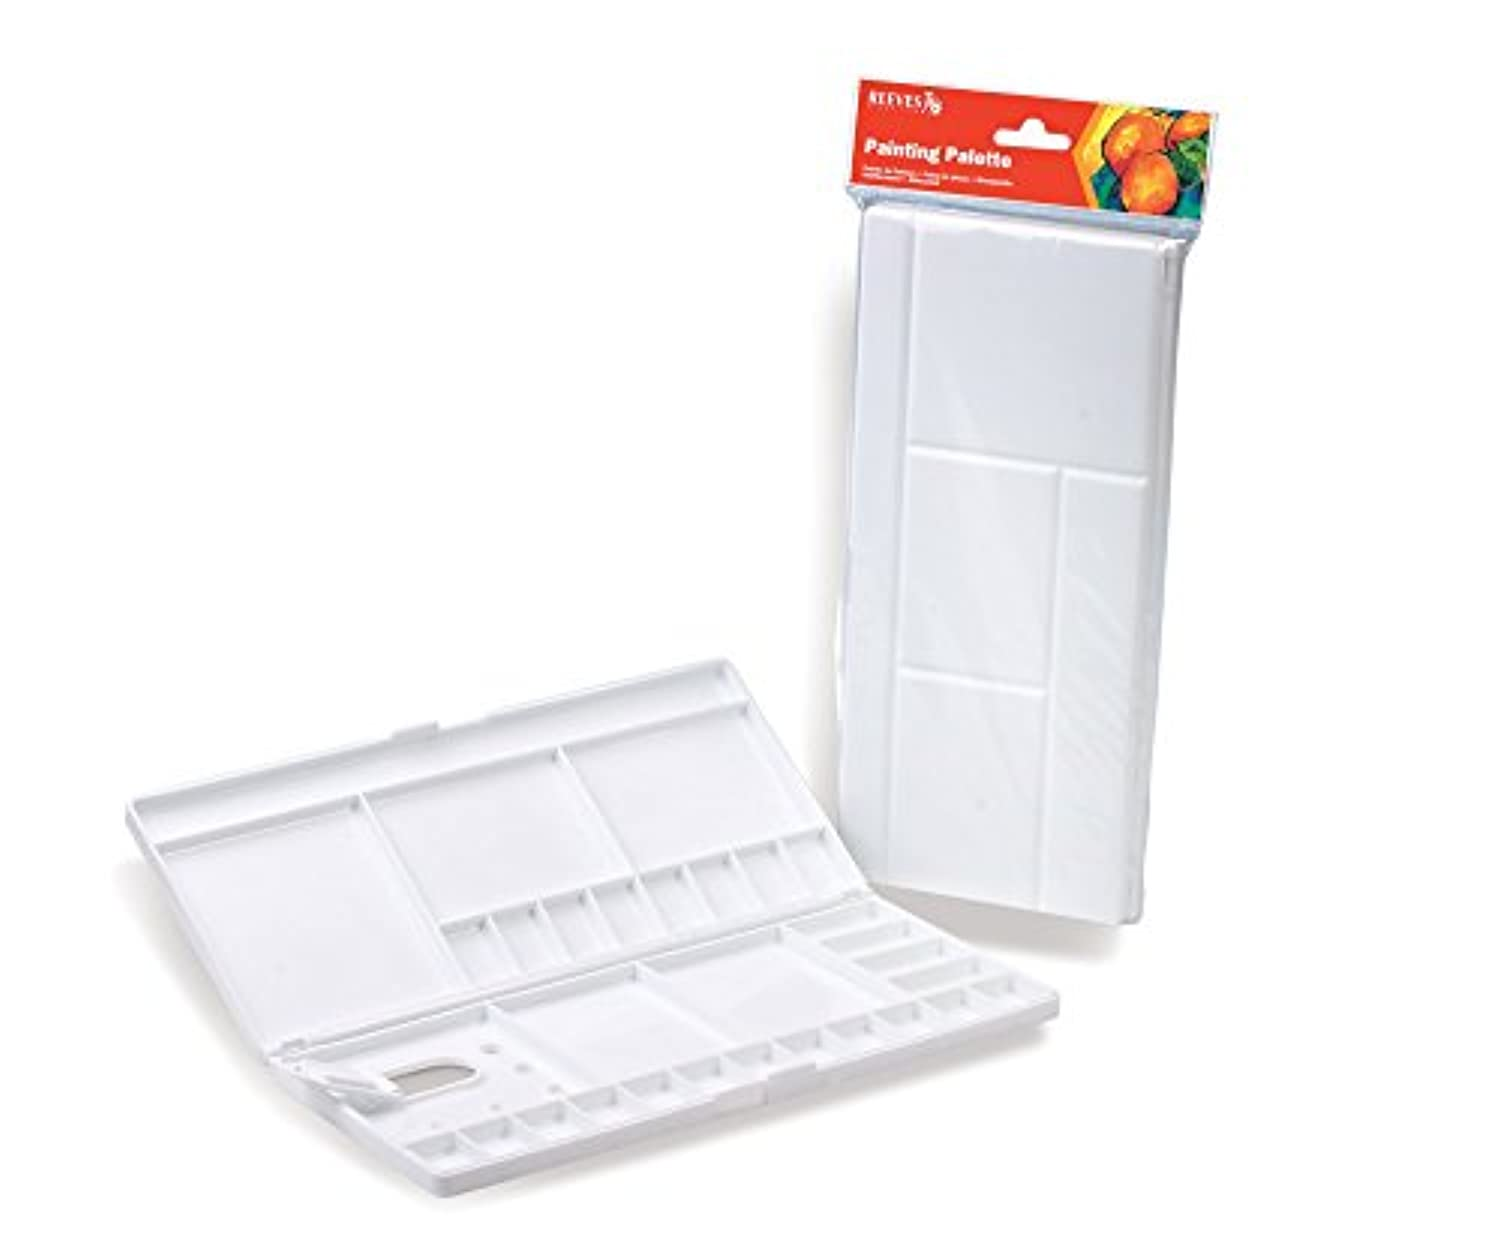 Reeves Folding Plastic Palette, Large by Reeves